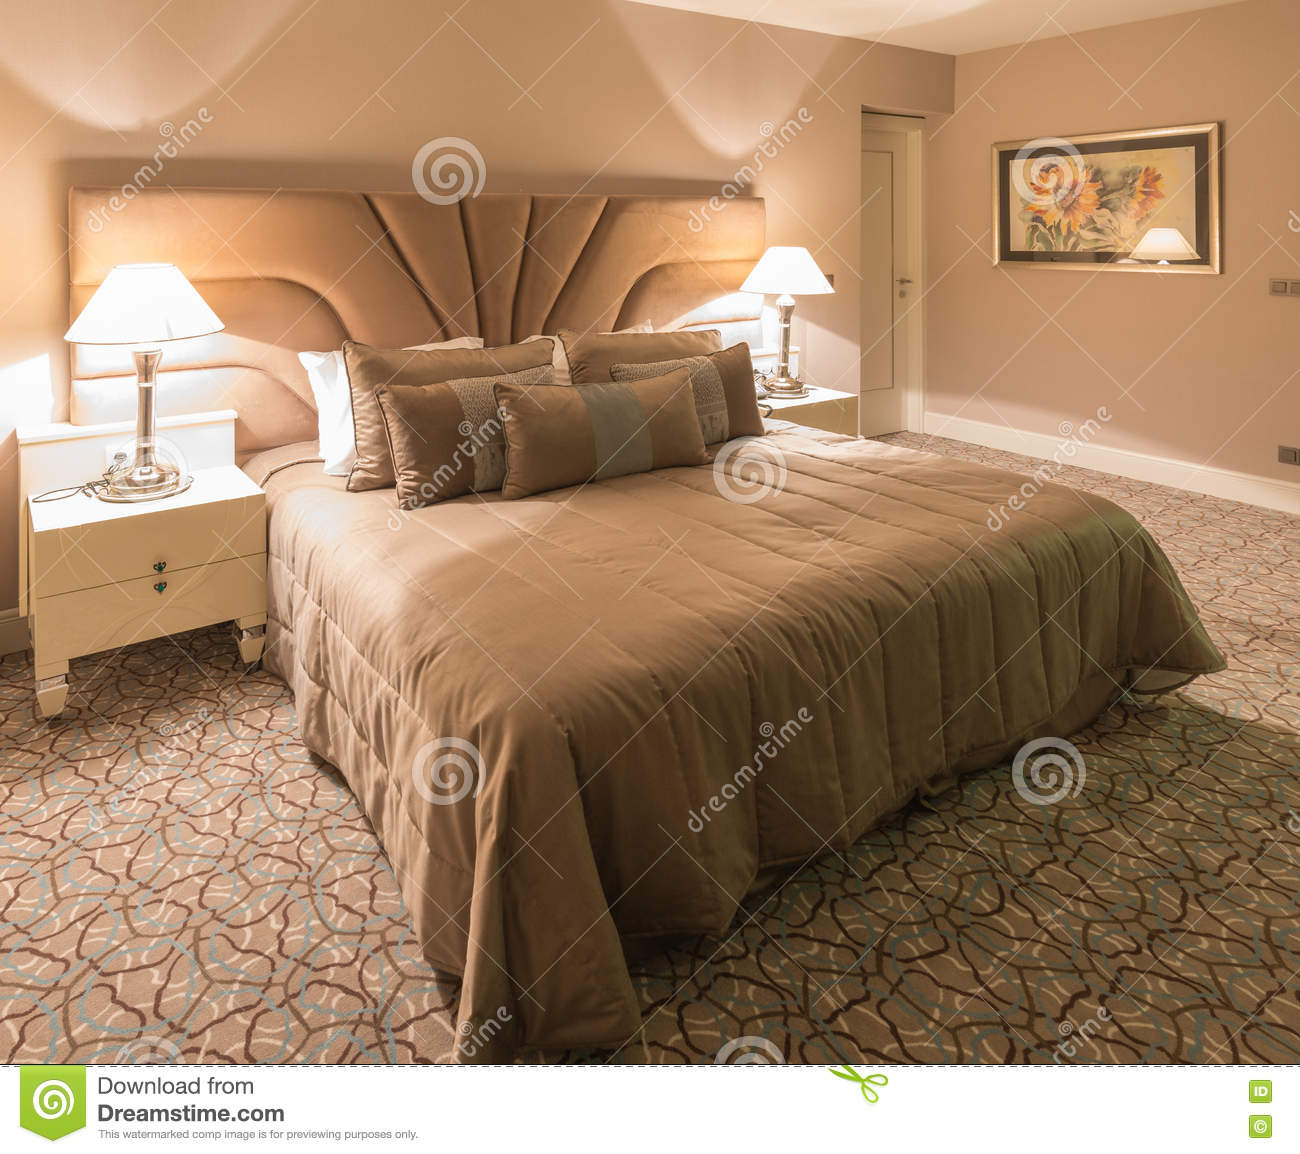 The Modern Hotel Room With Big Bed Stock Image